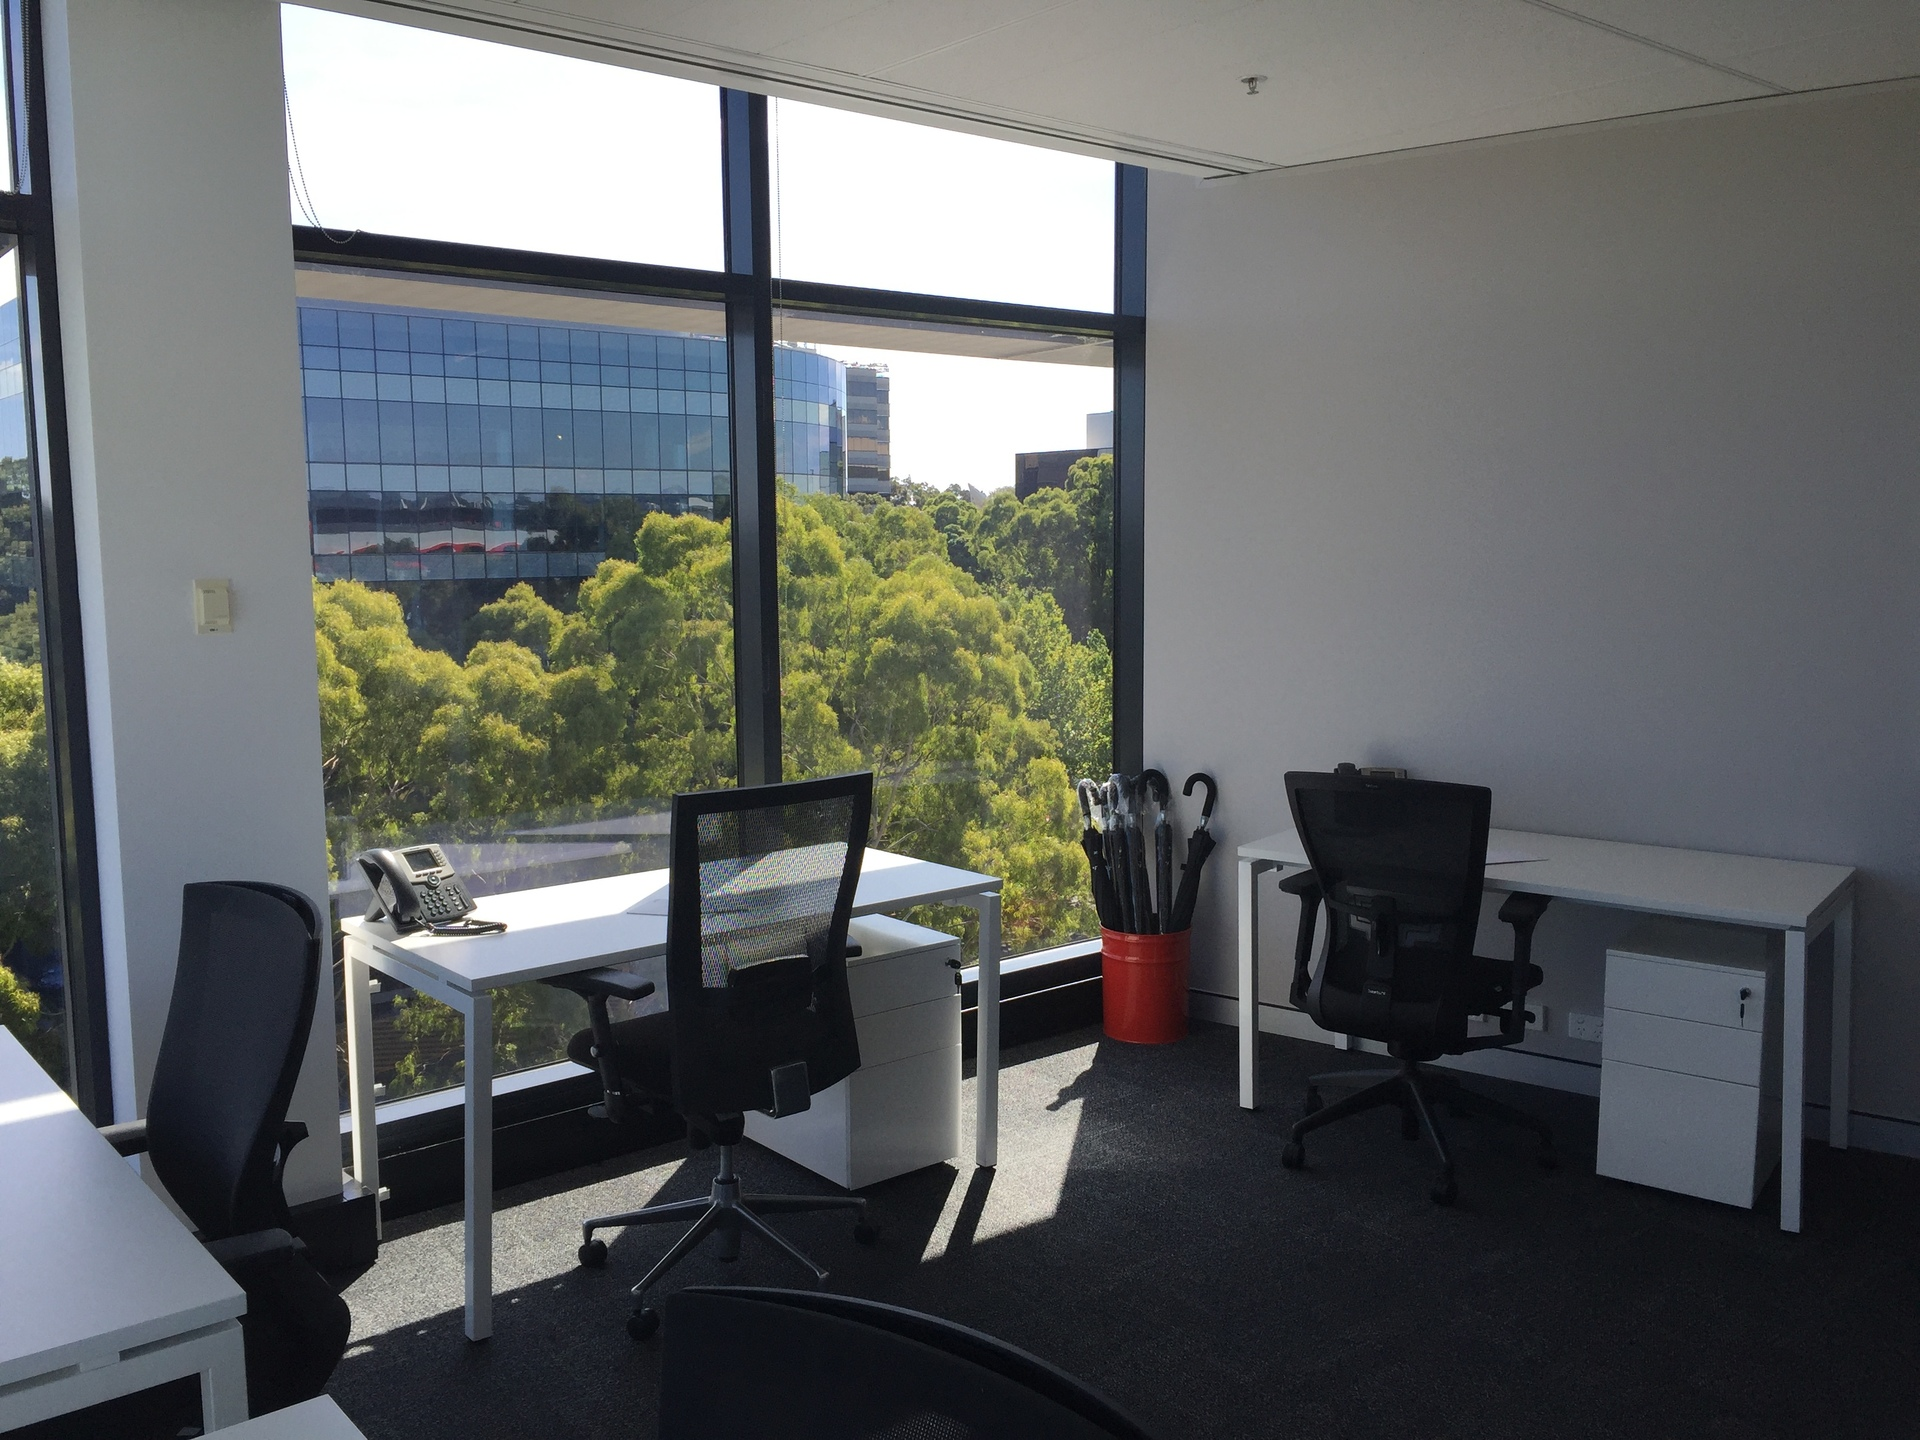 Prime location in North Ryde/Macquarie Park